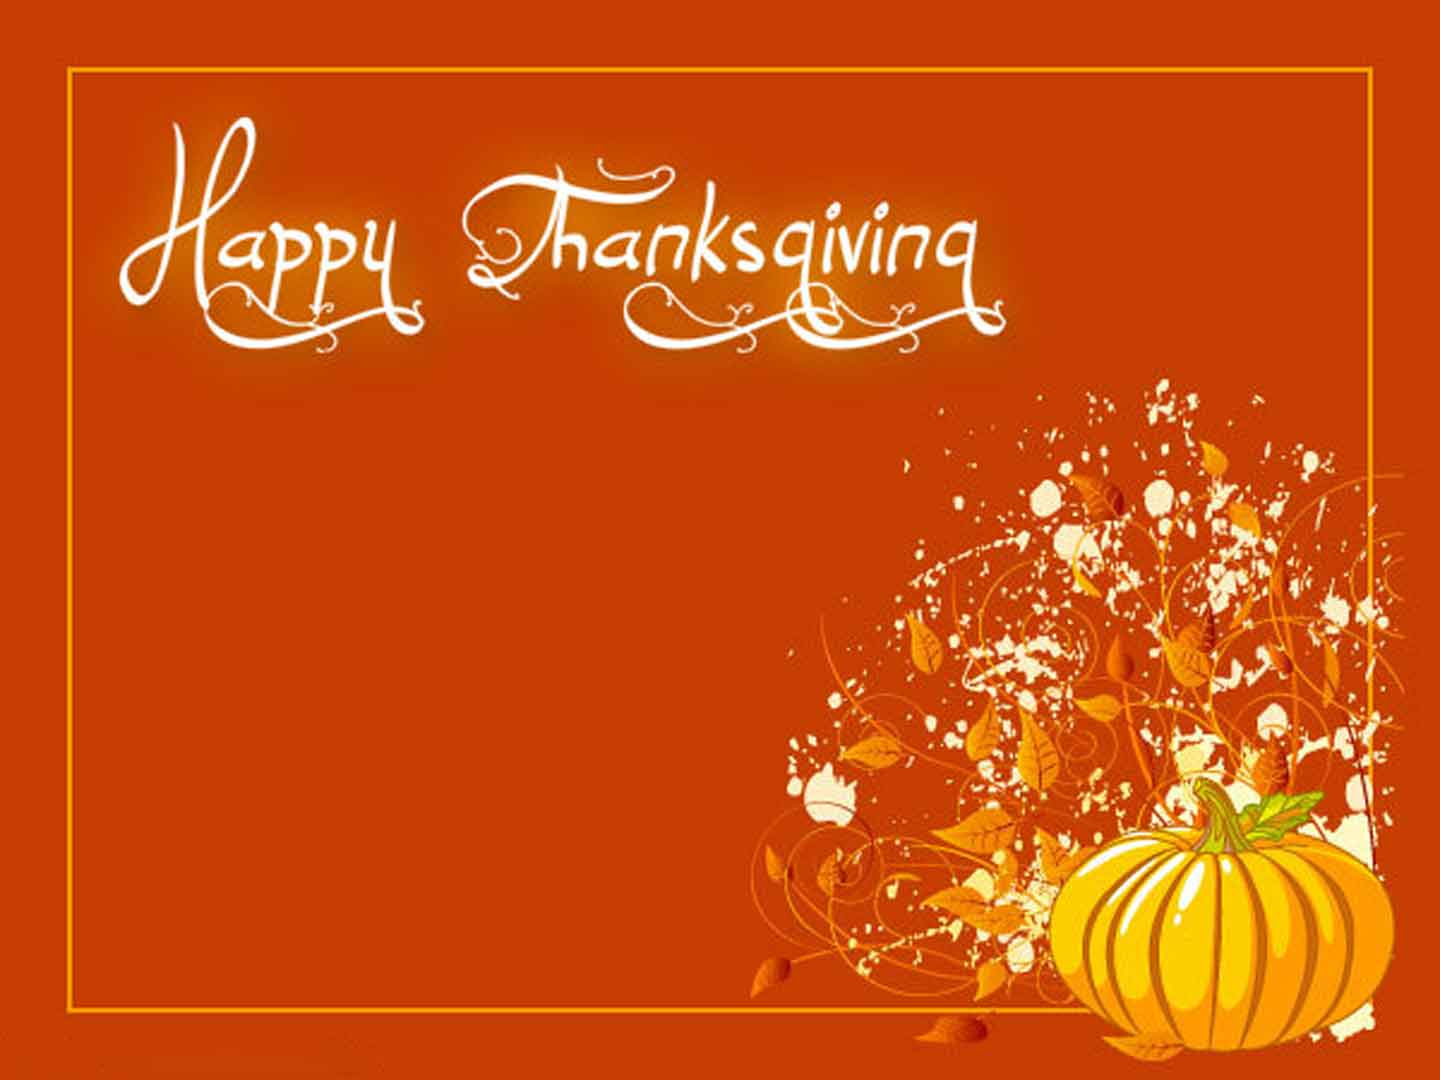 Thanksgiving Hd Wallpaper - WallpaperSafari